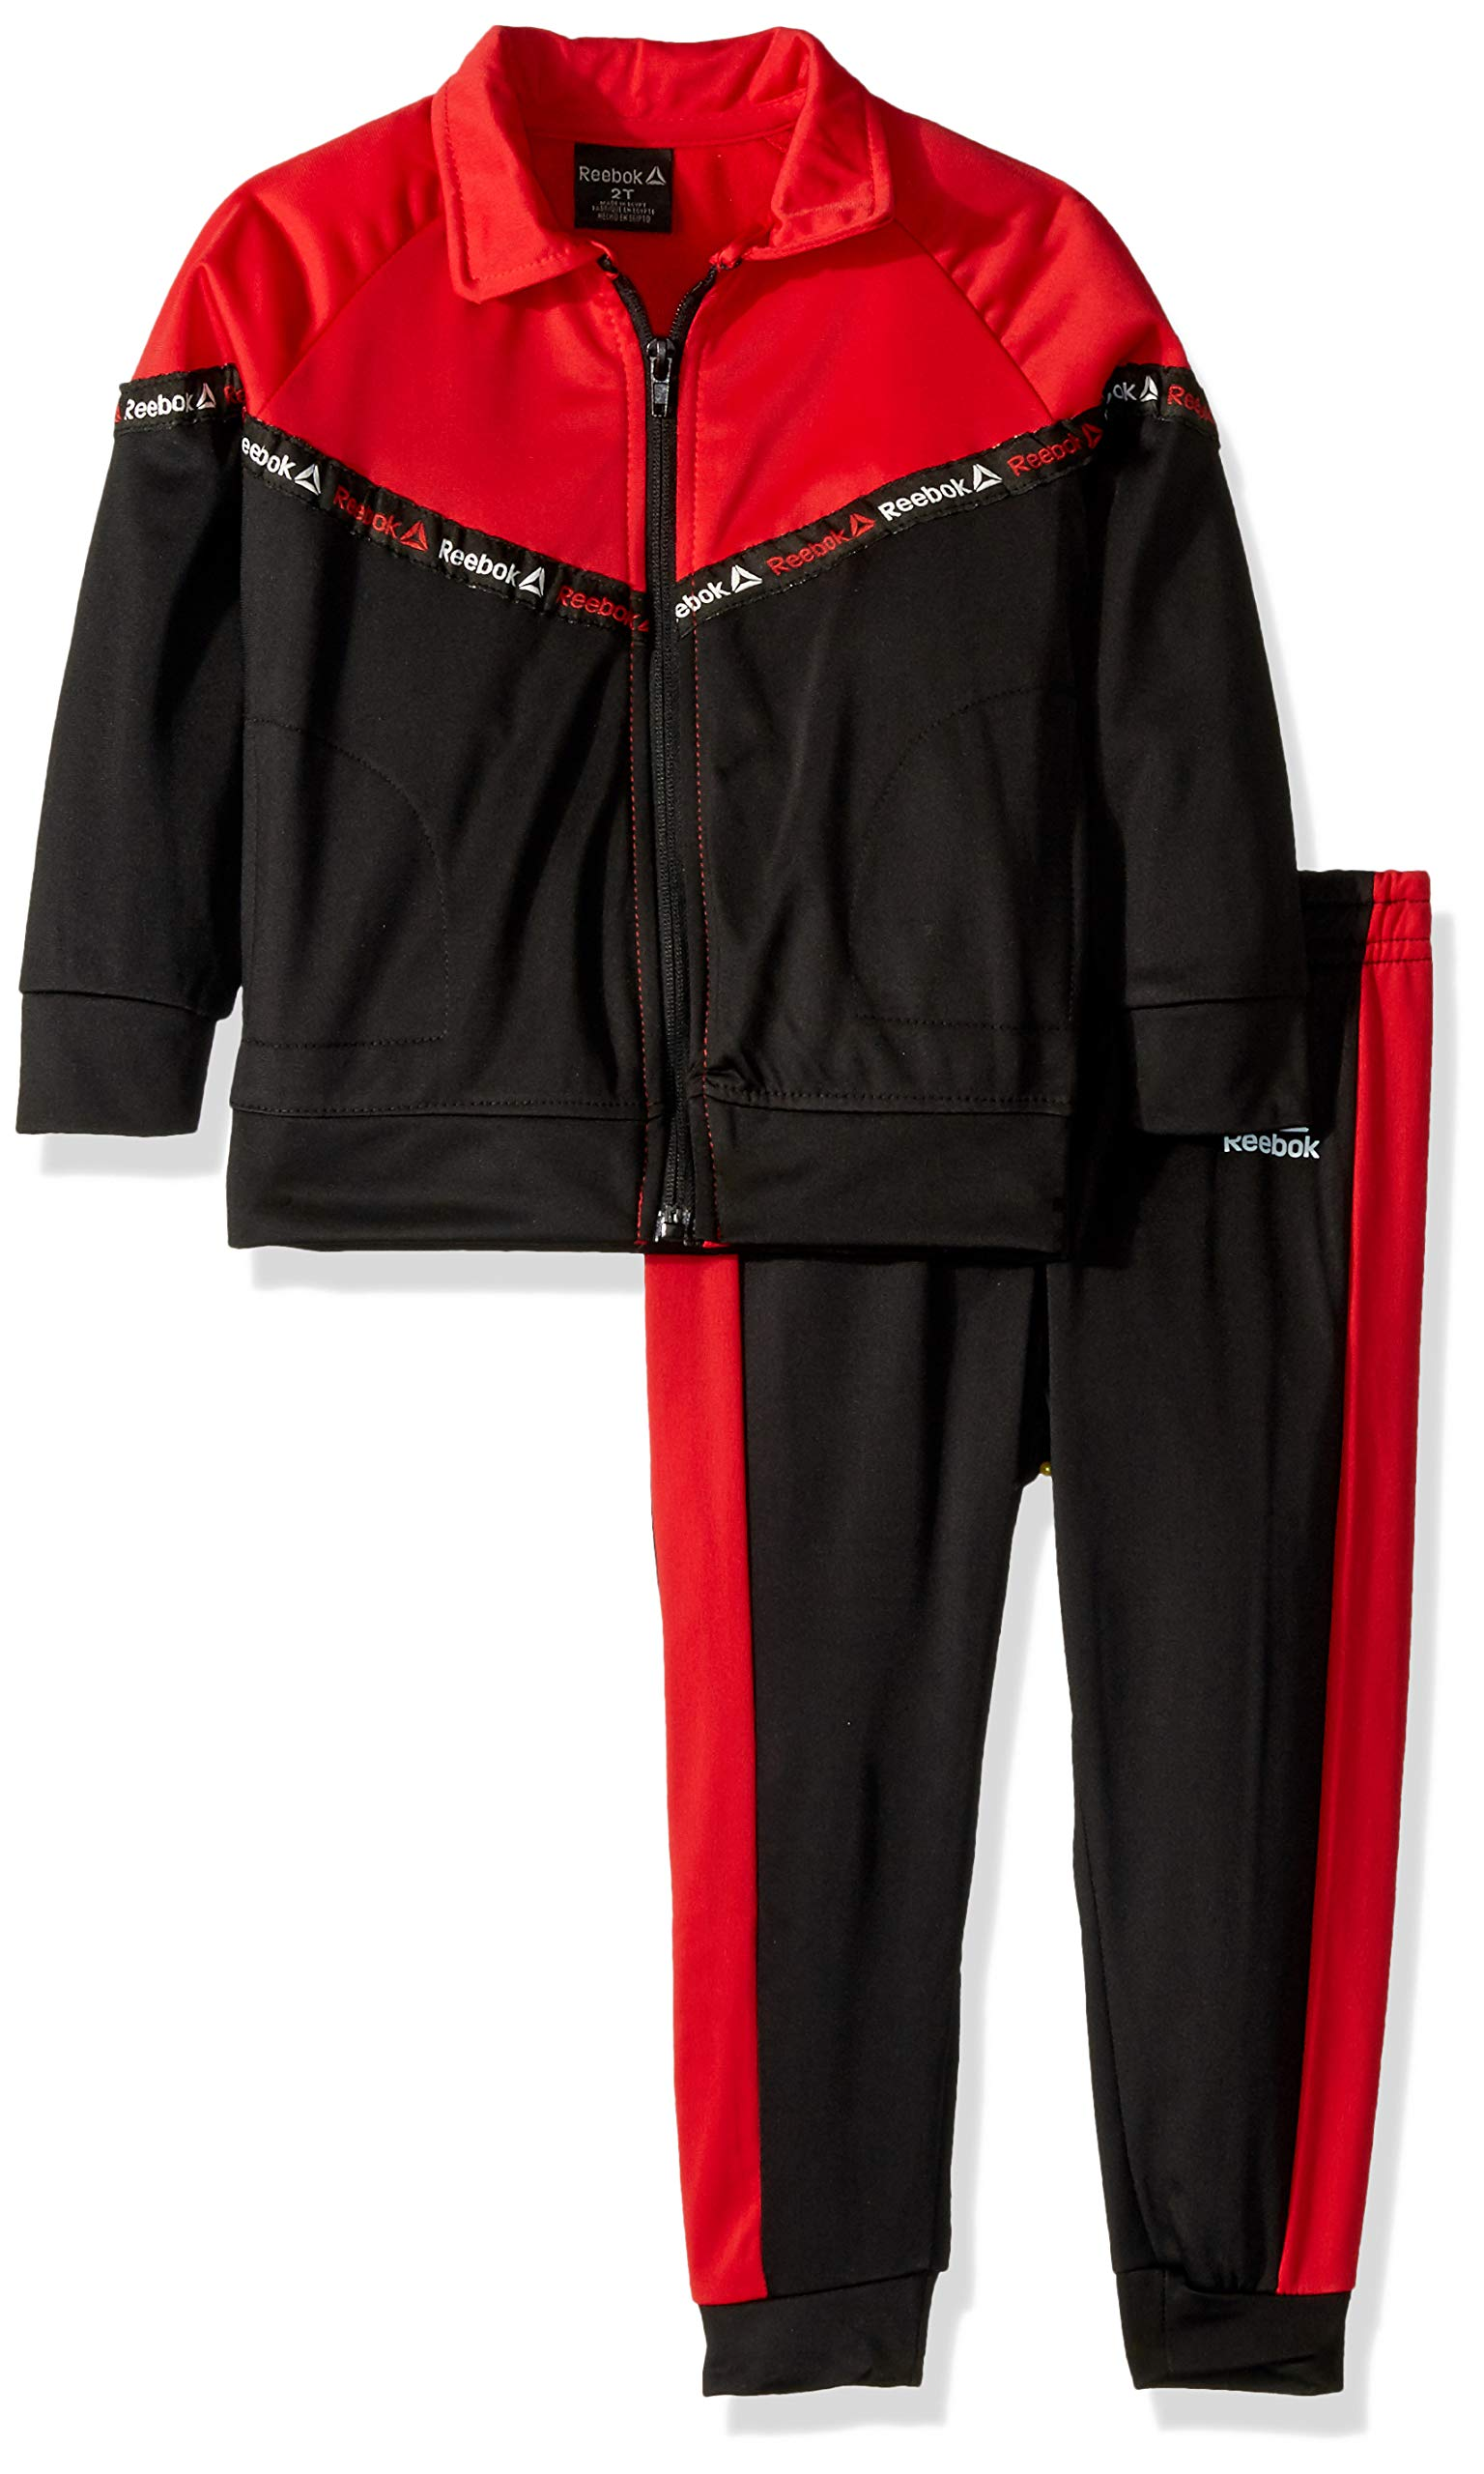 Reebok Boys' Toddler Two Color Tricot Bomber Jacket and Jog Pant, Black, 4T